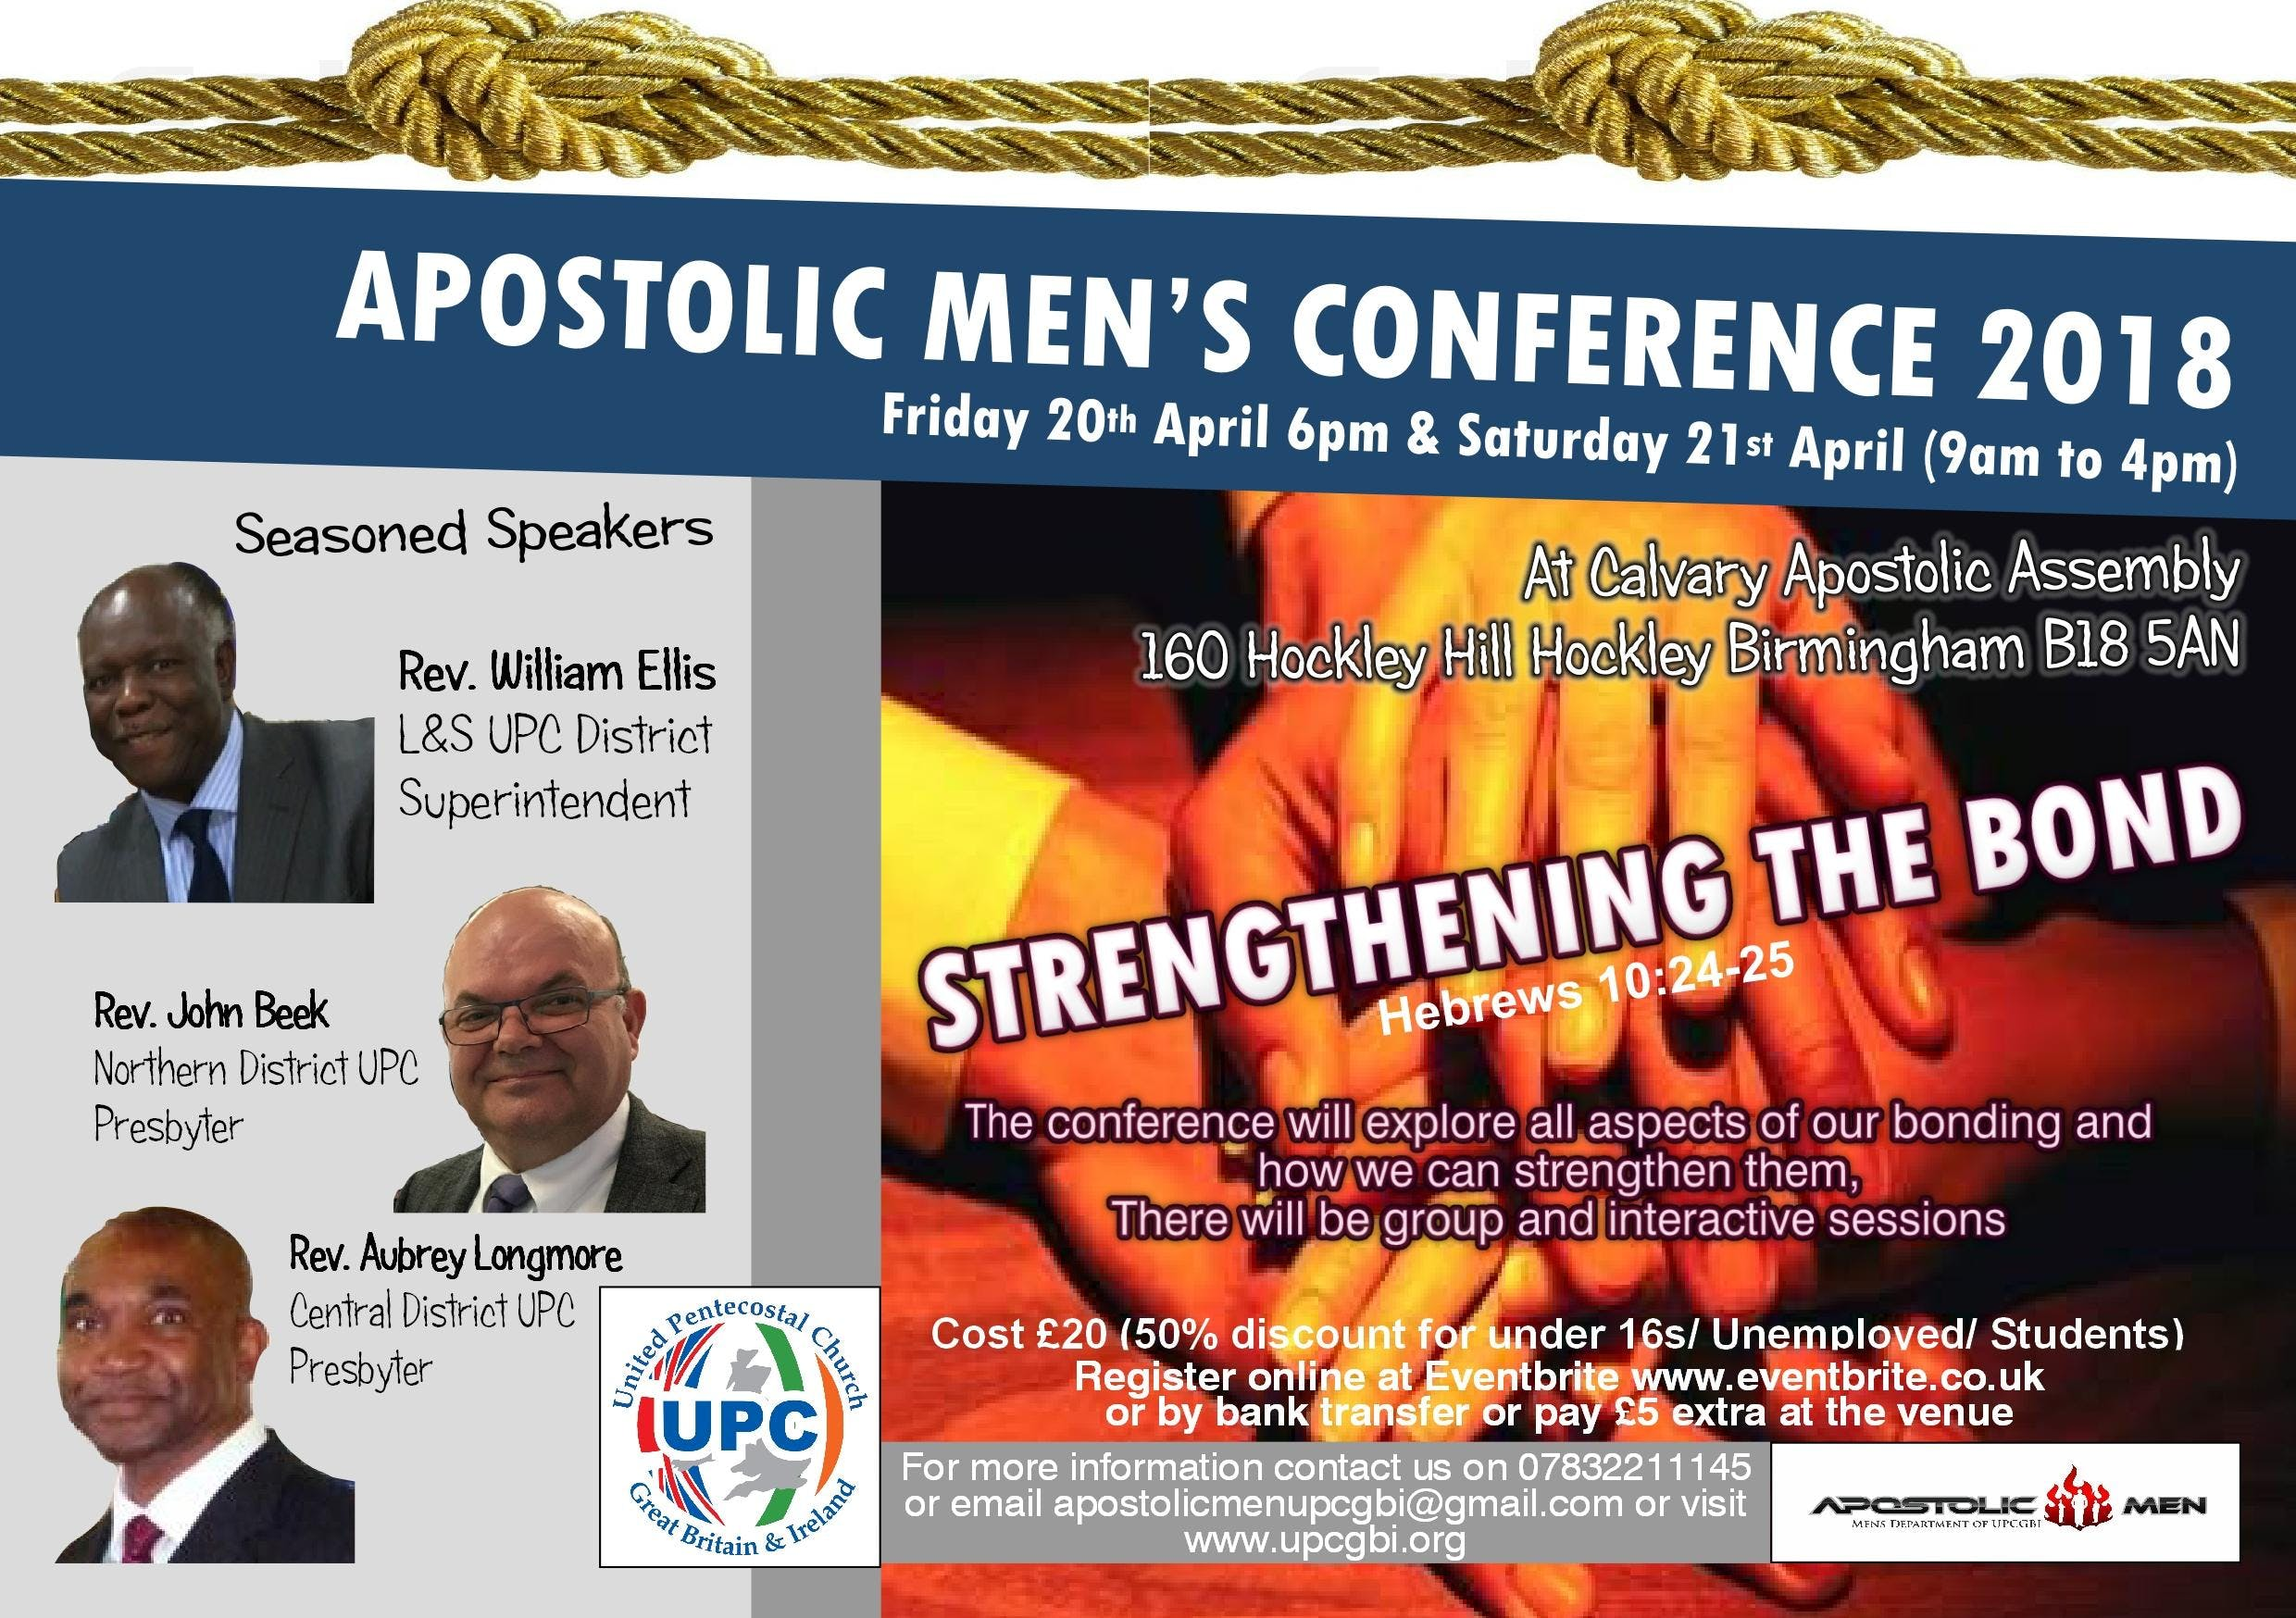 APOSTOLIC MEN'S CONFERENCE 2018 - STRENGTHENI